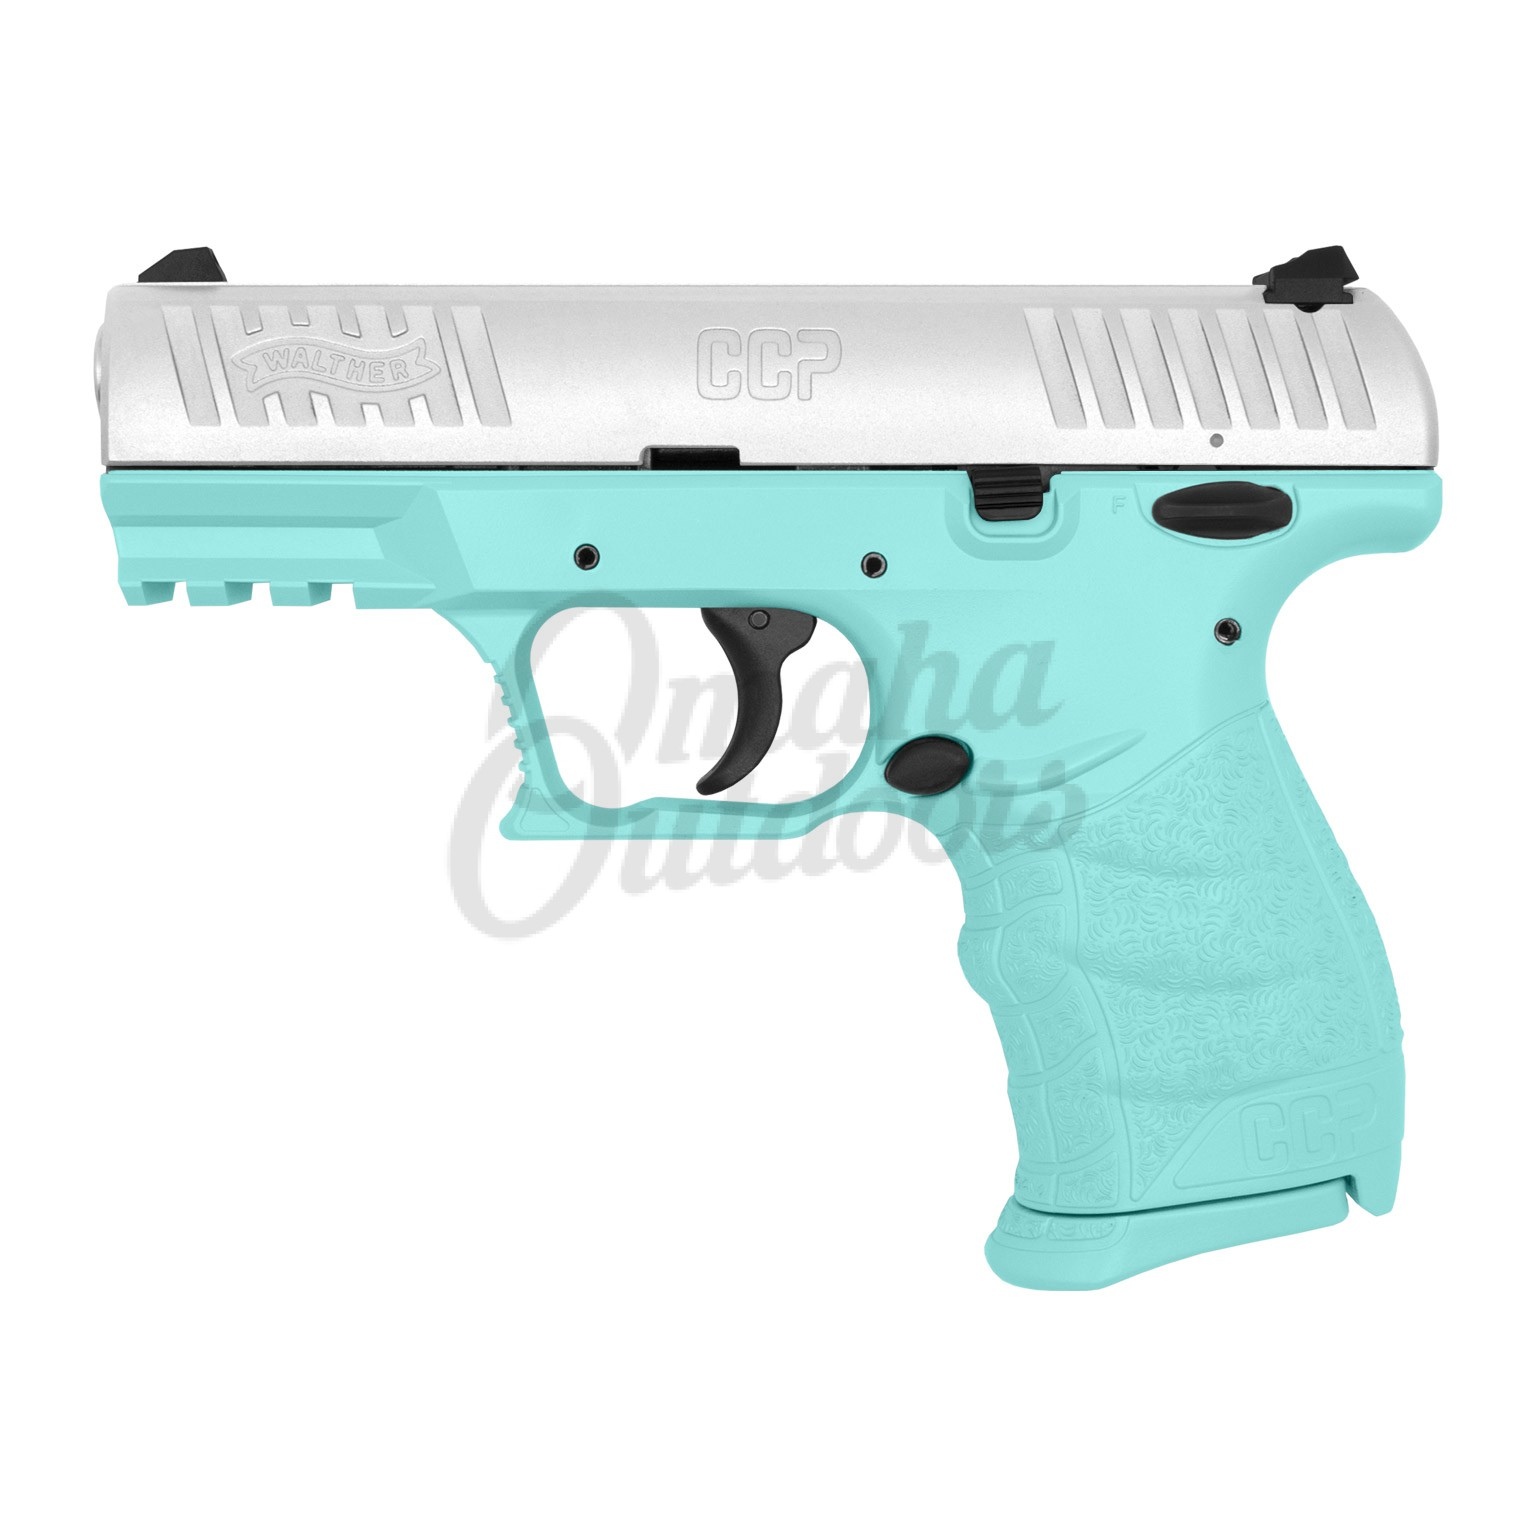 Walther Arms CCP M2 Vera Blue Pistol 9mm Stainless Slide 8 RD 5080501-VBL-FR